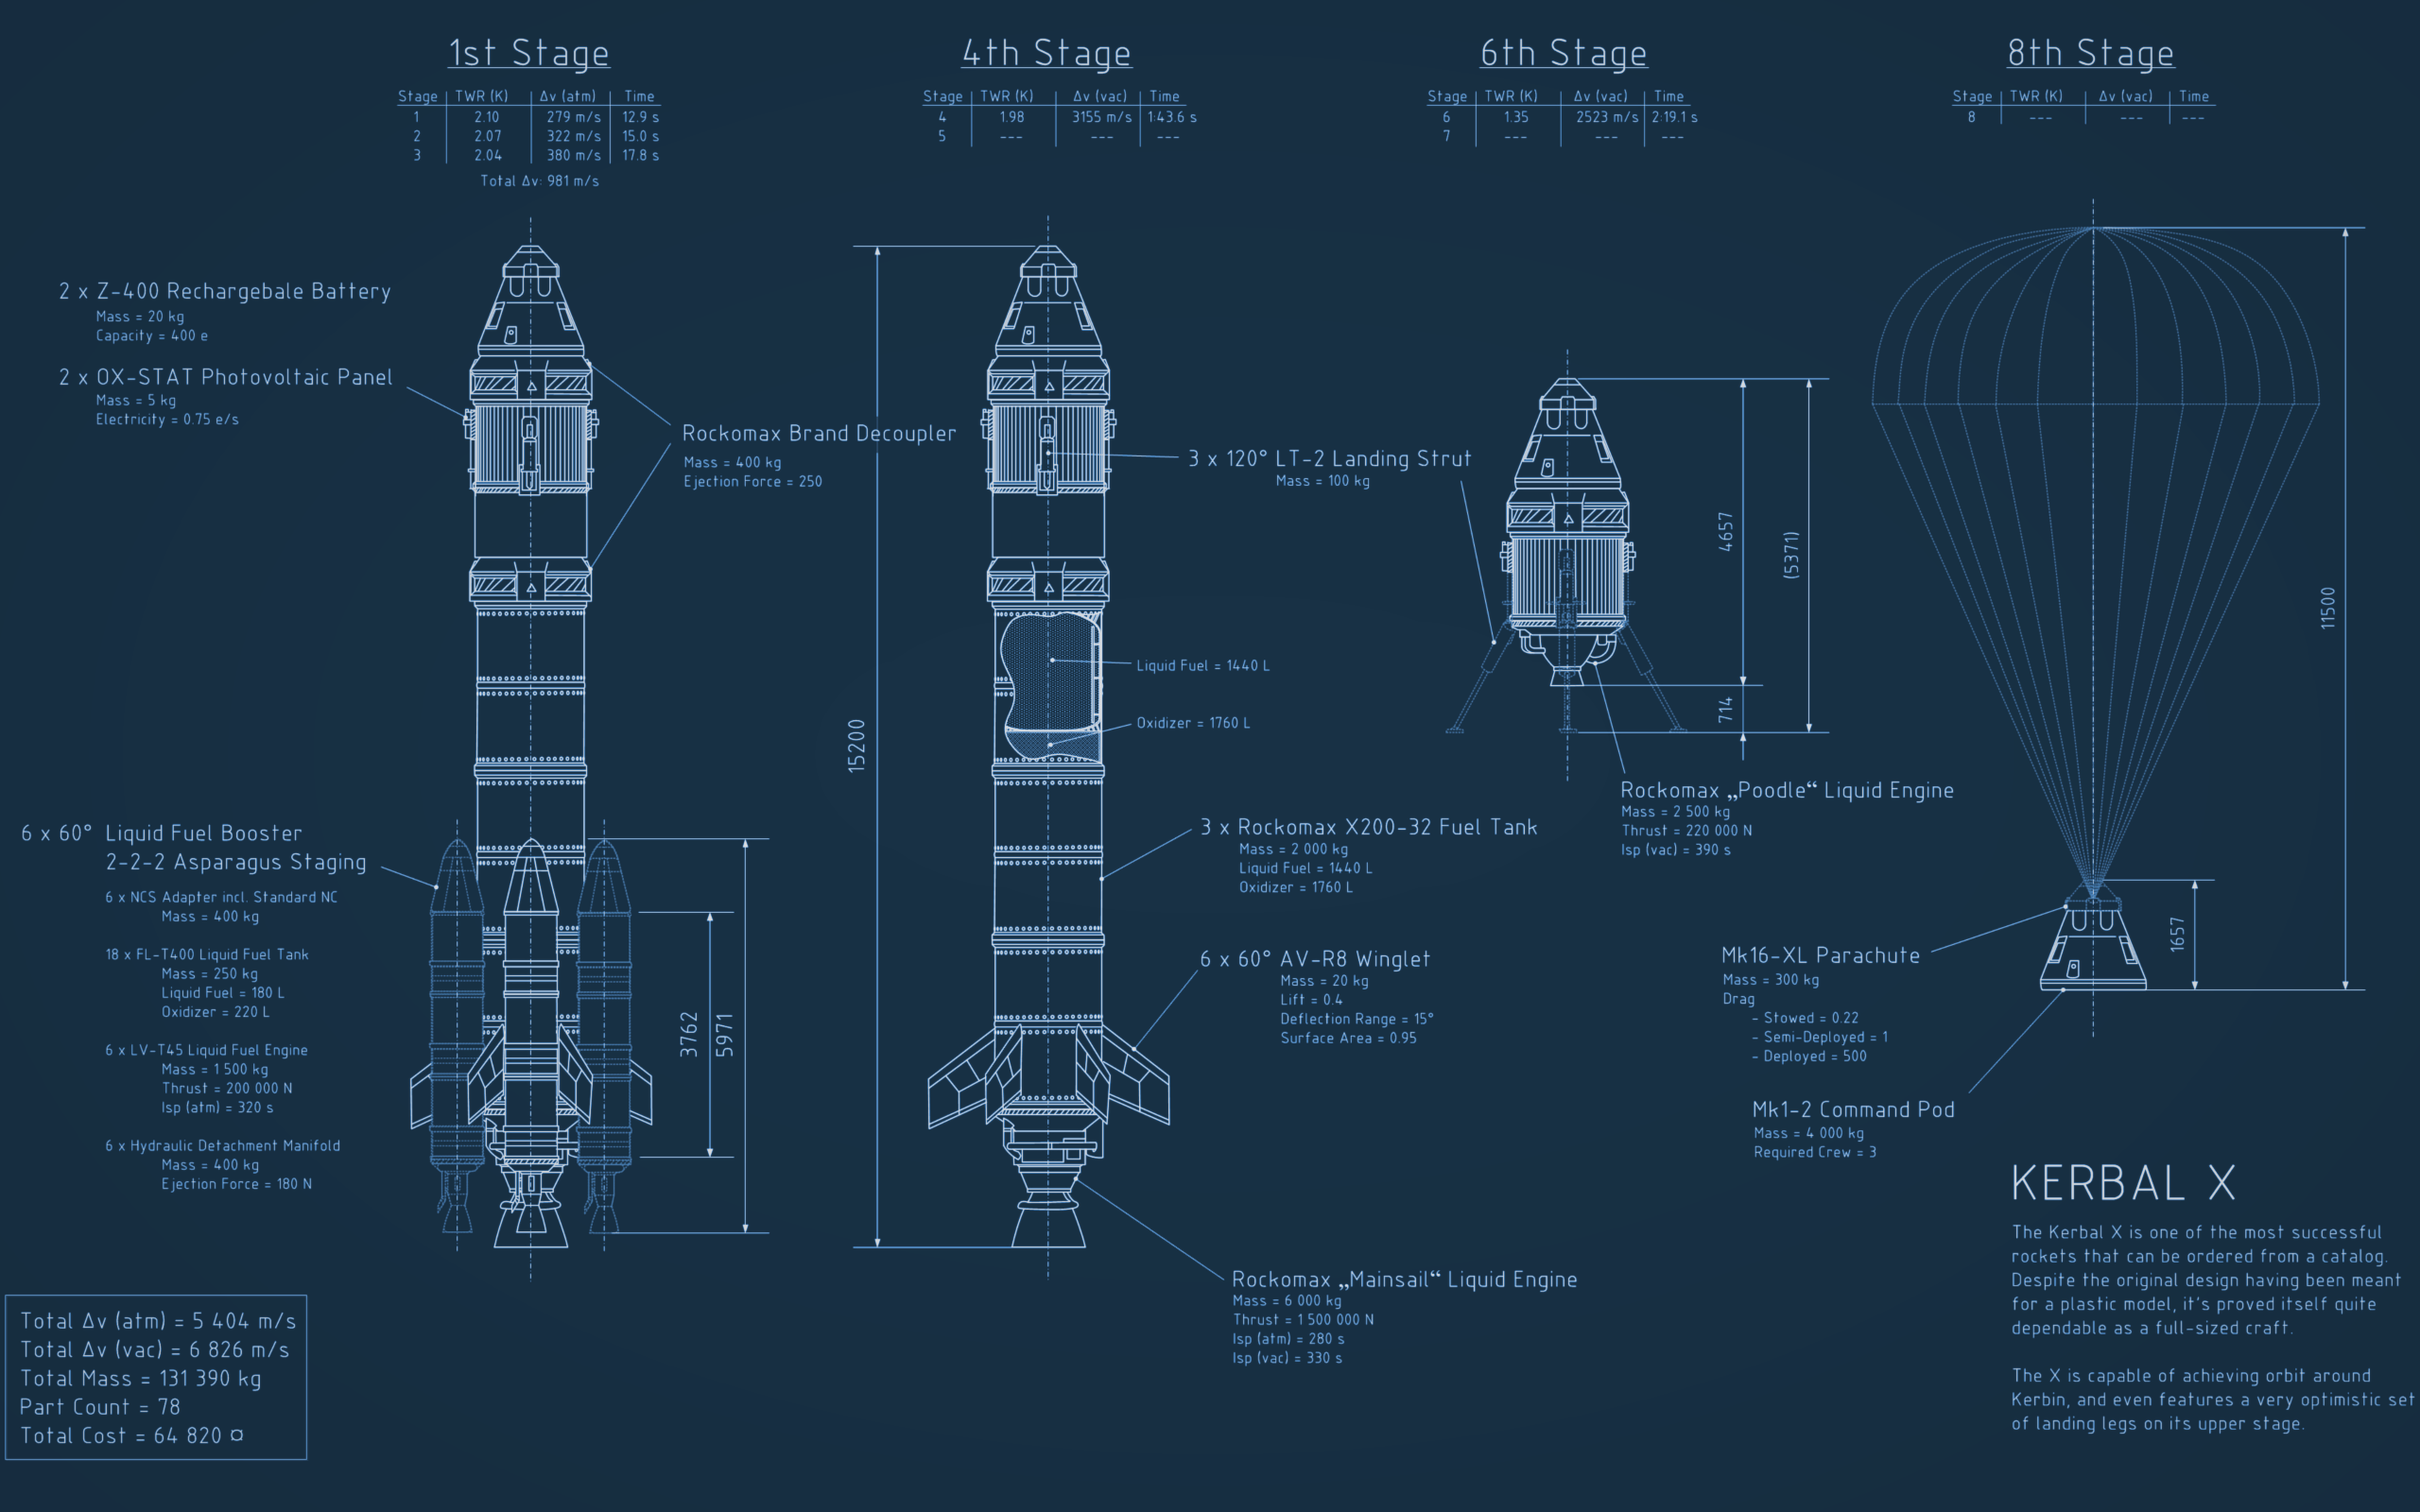 kerbal space program schematics - photo #11